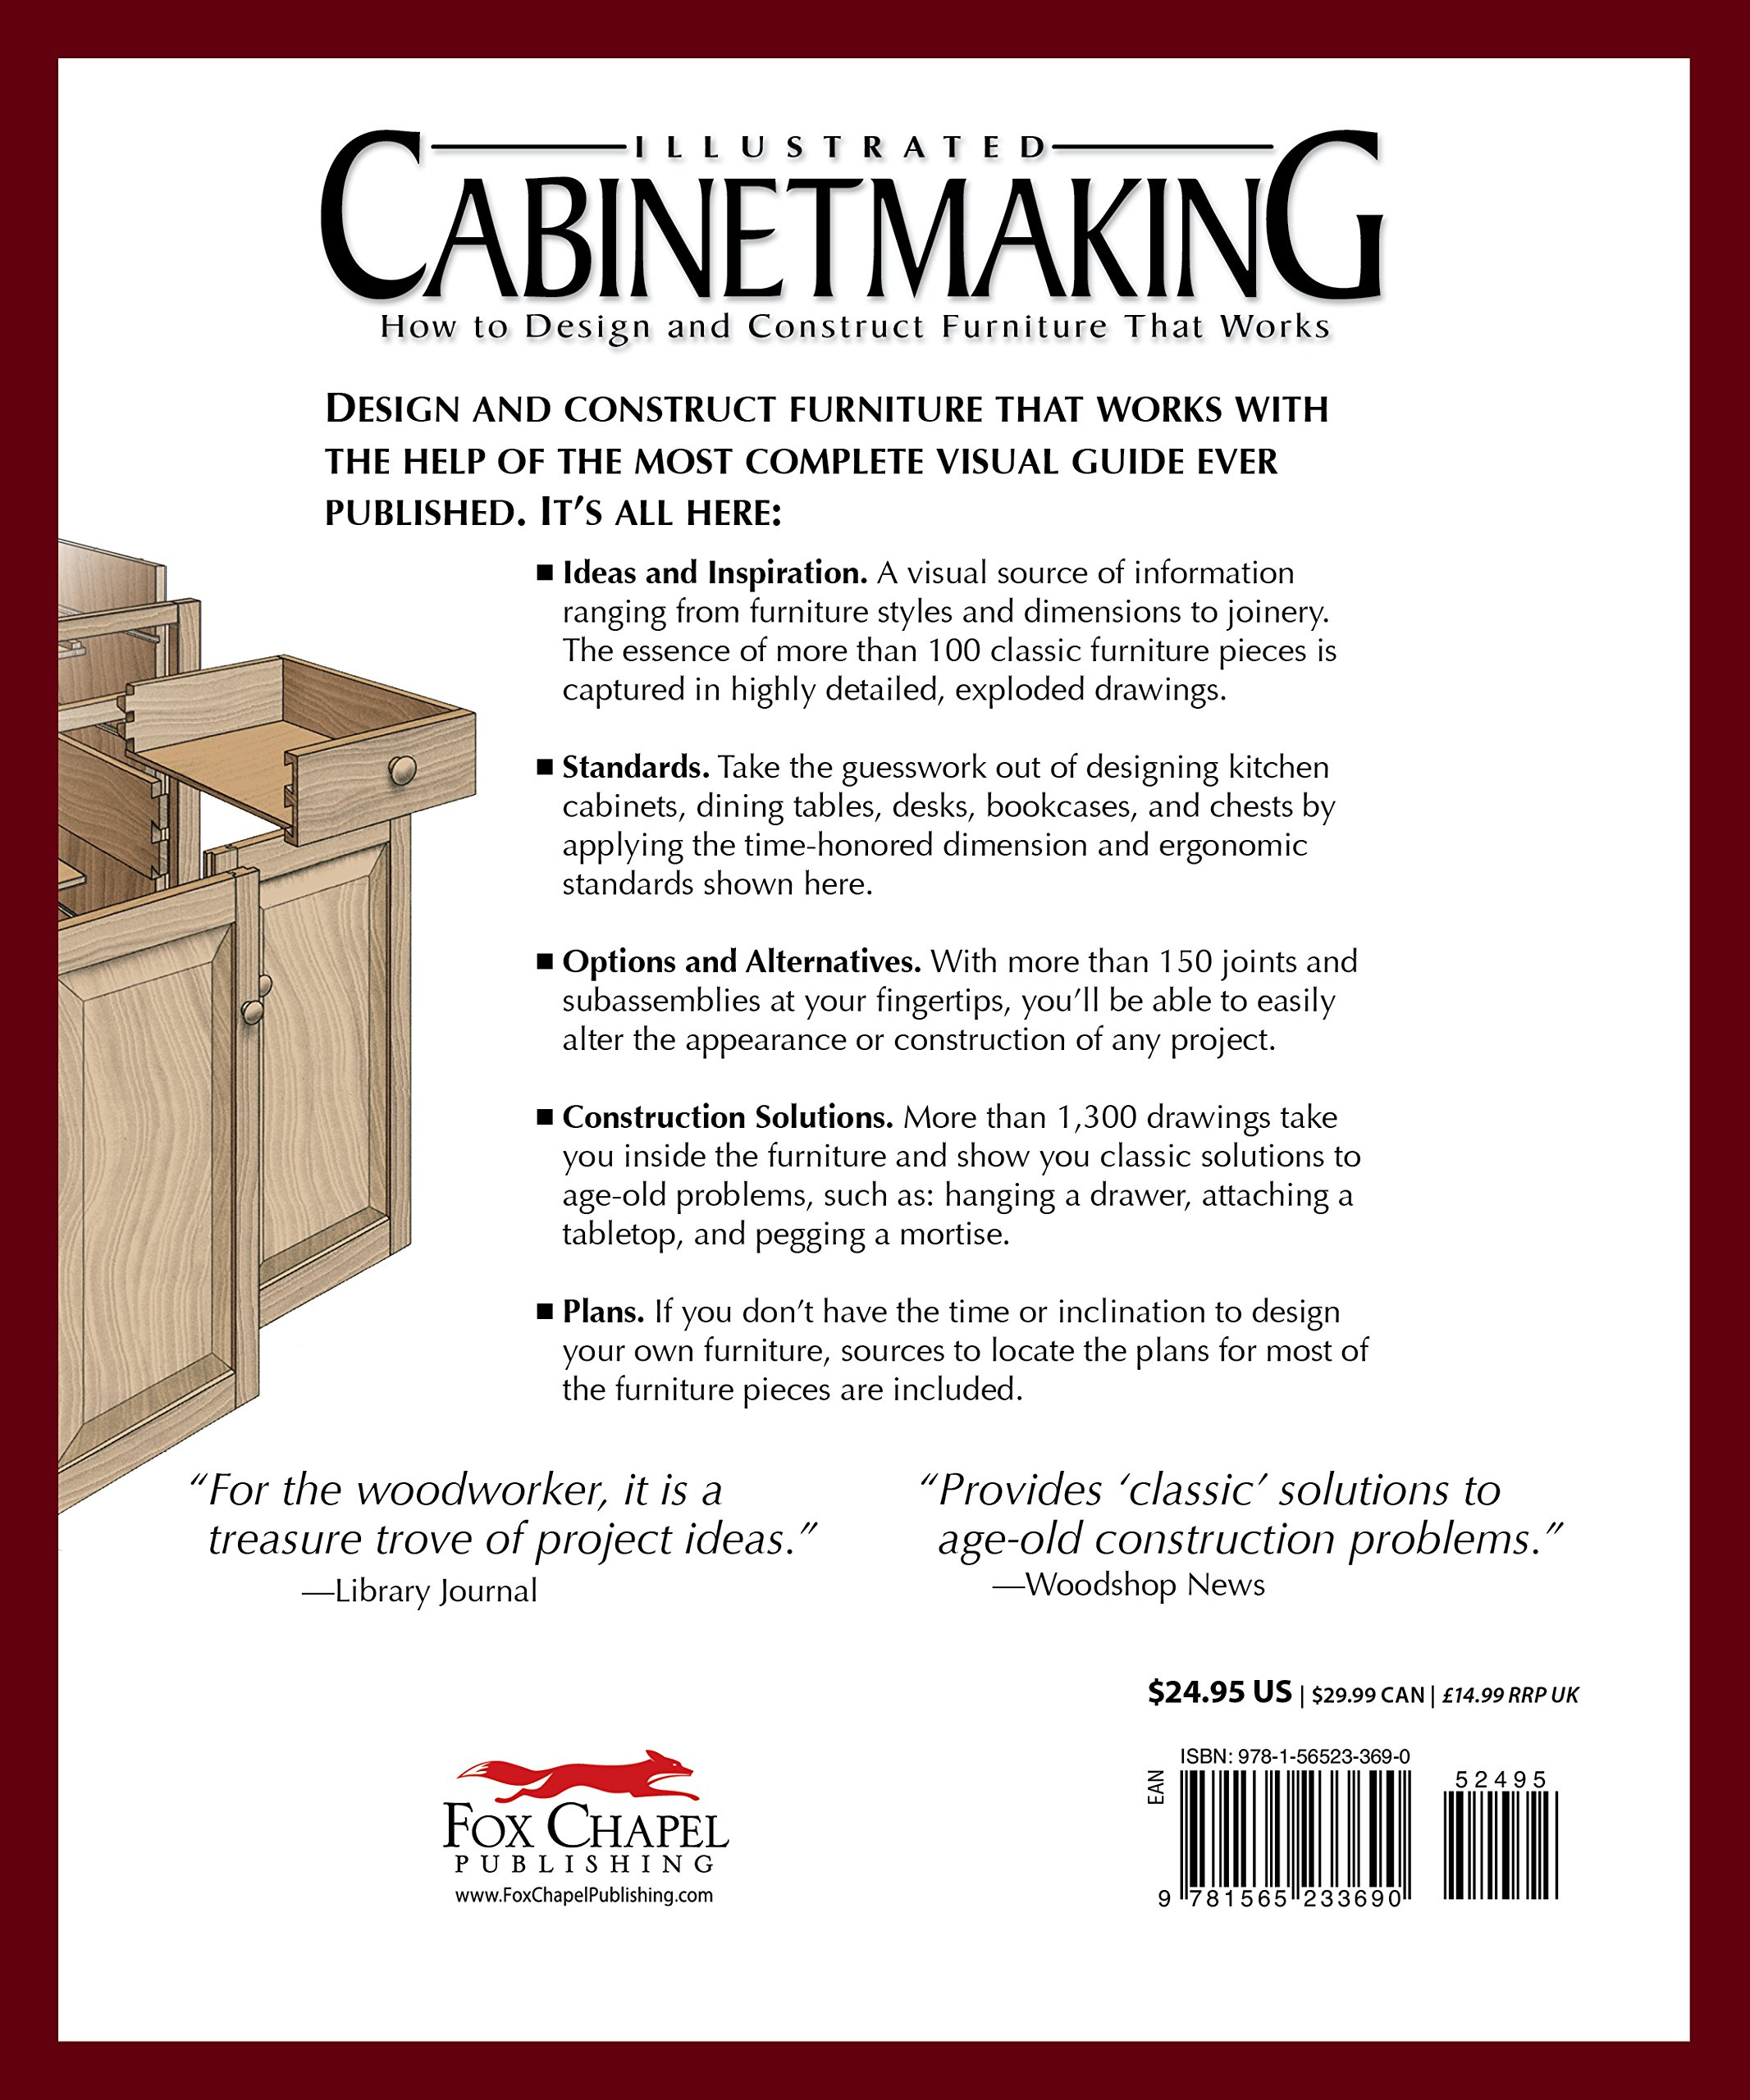 Furniture making manual ebook array illustrated cabinetmaking how to design and construct furniture rh amazon com fandeluxe Choice Image